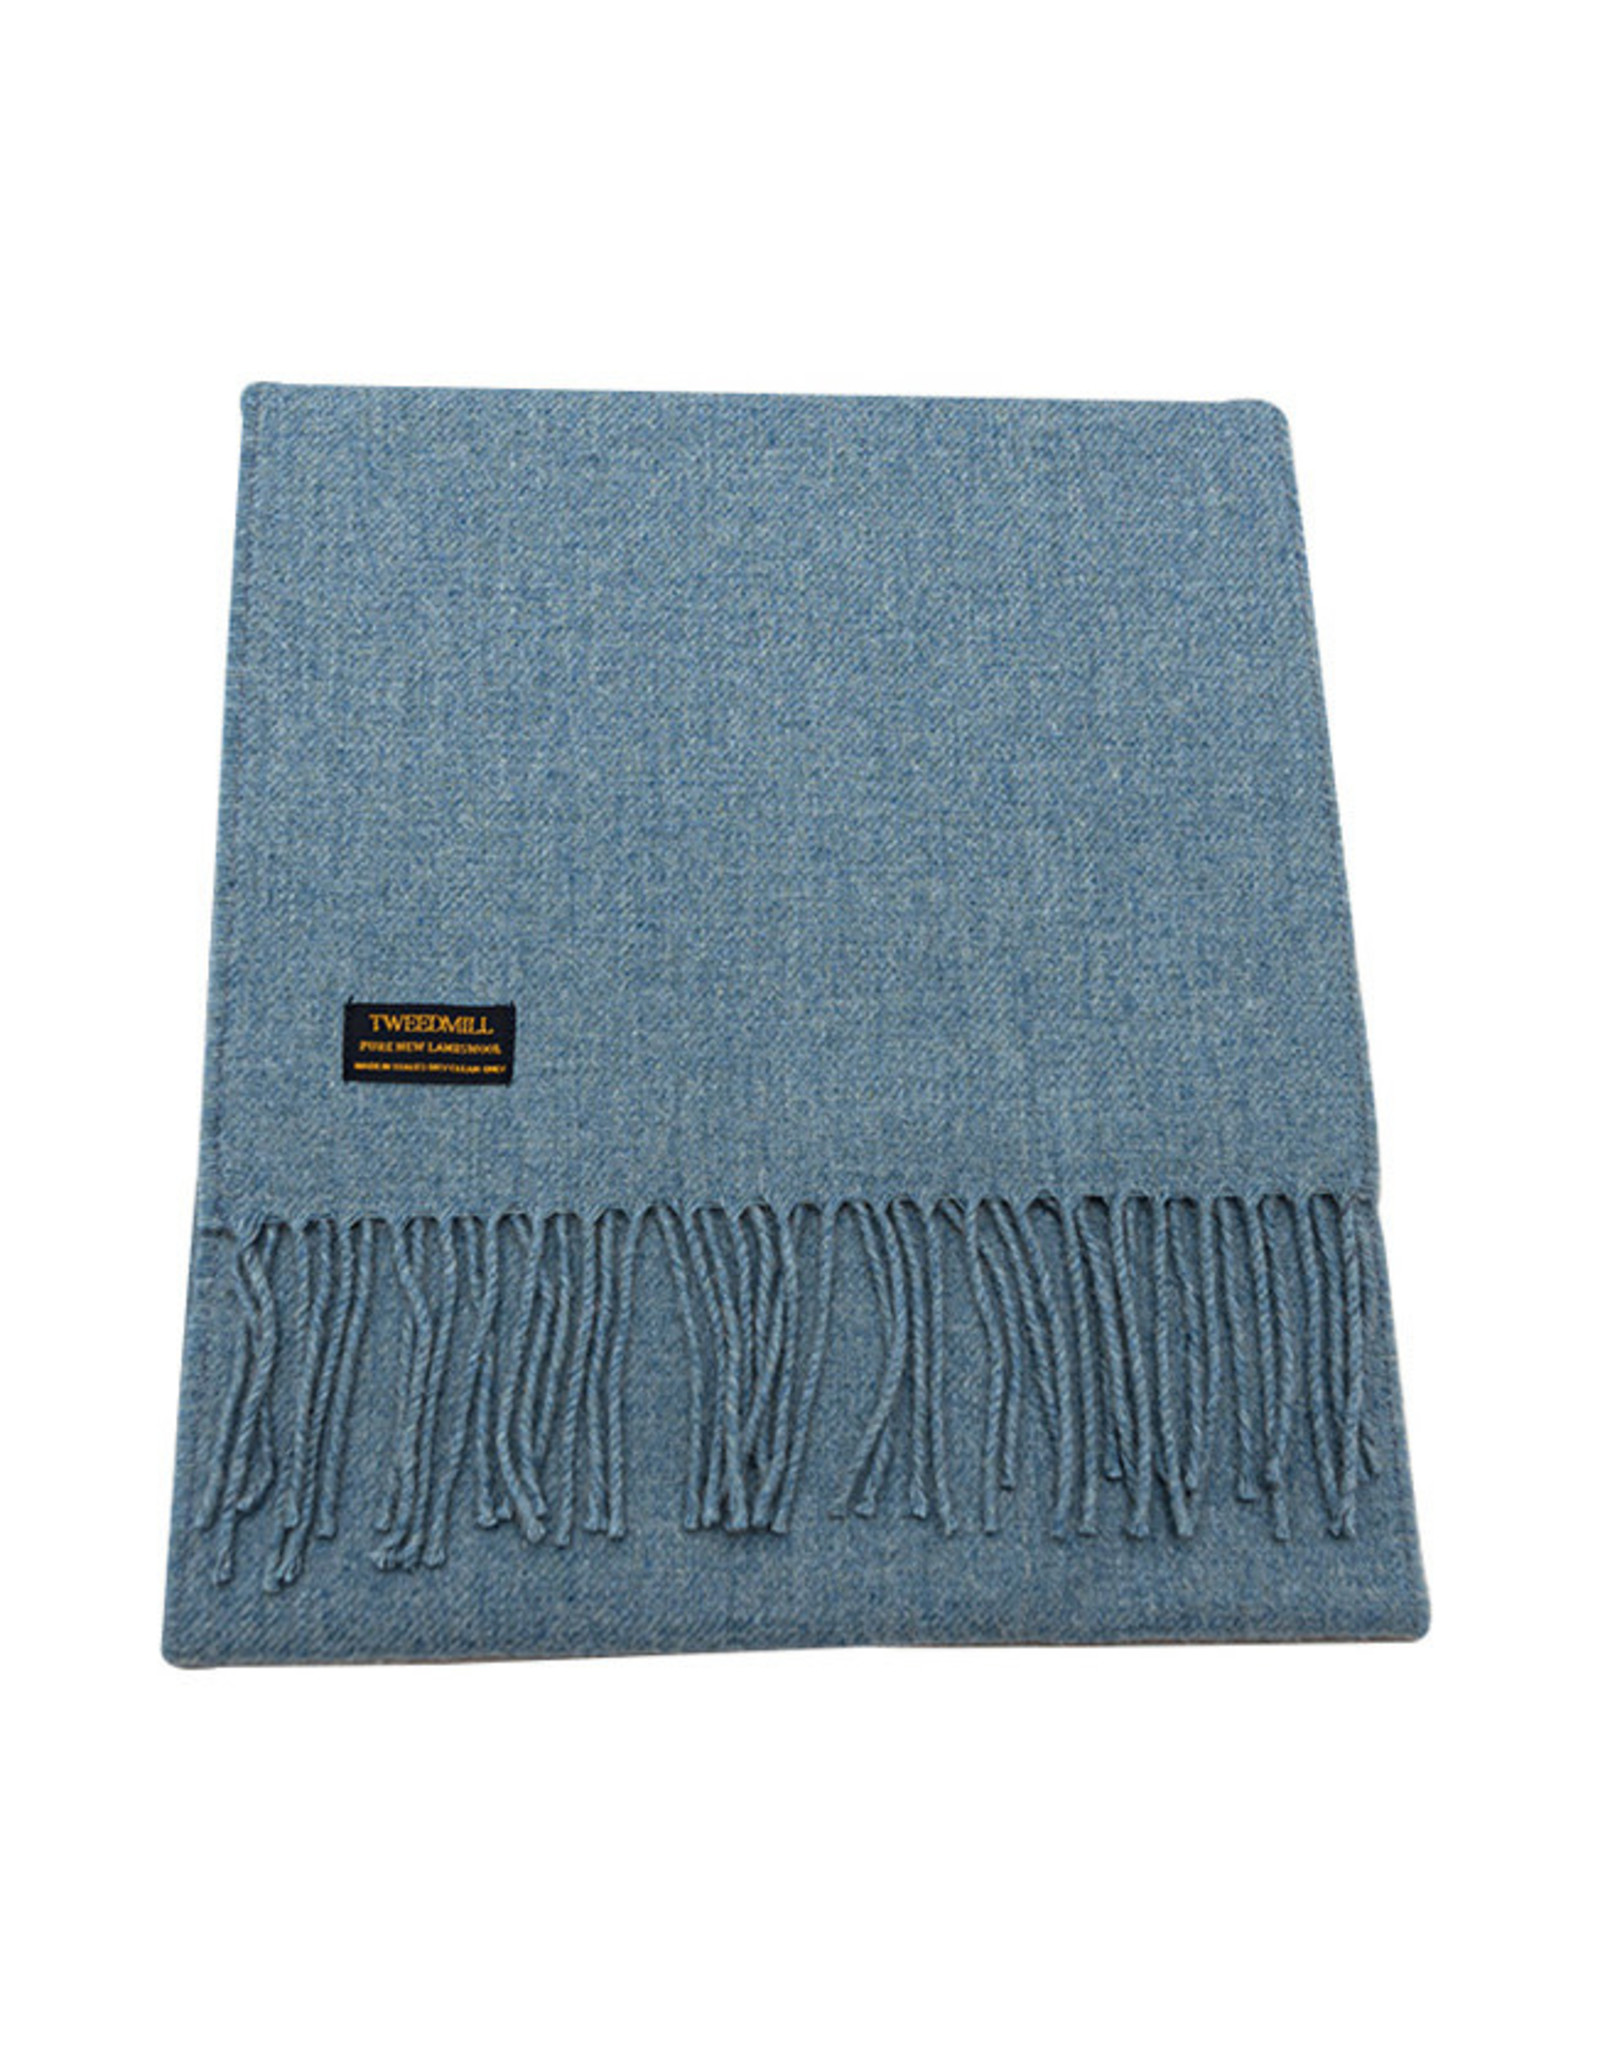 Lambswool Fring Scarf - Stone Blue